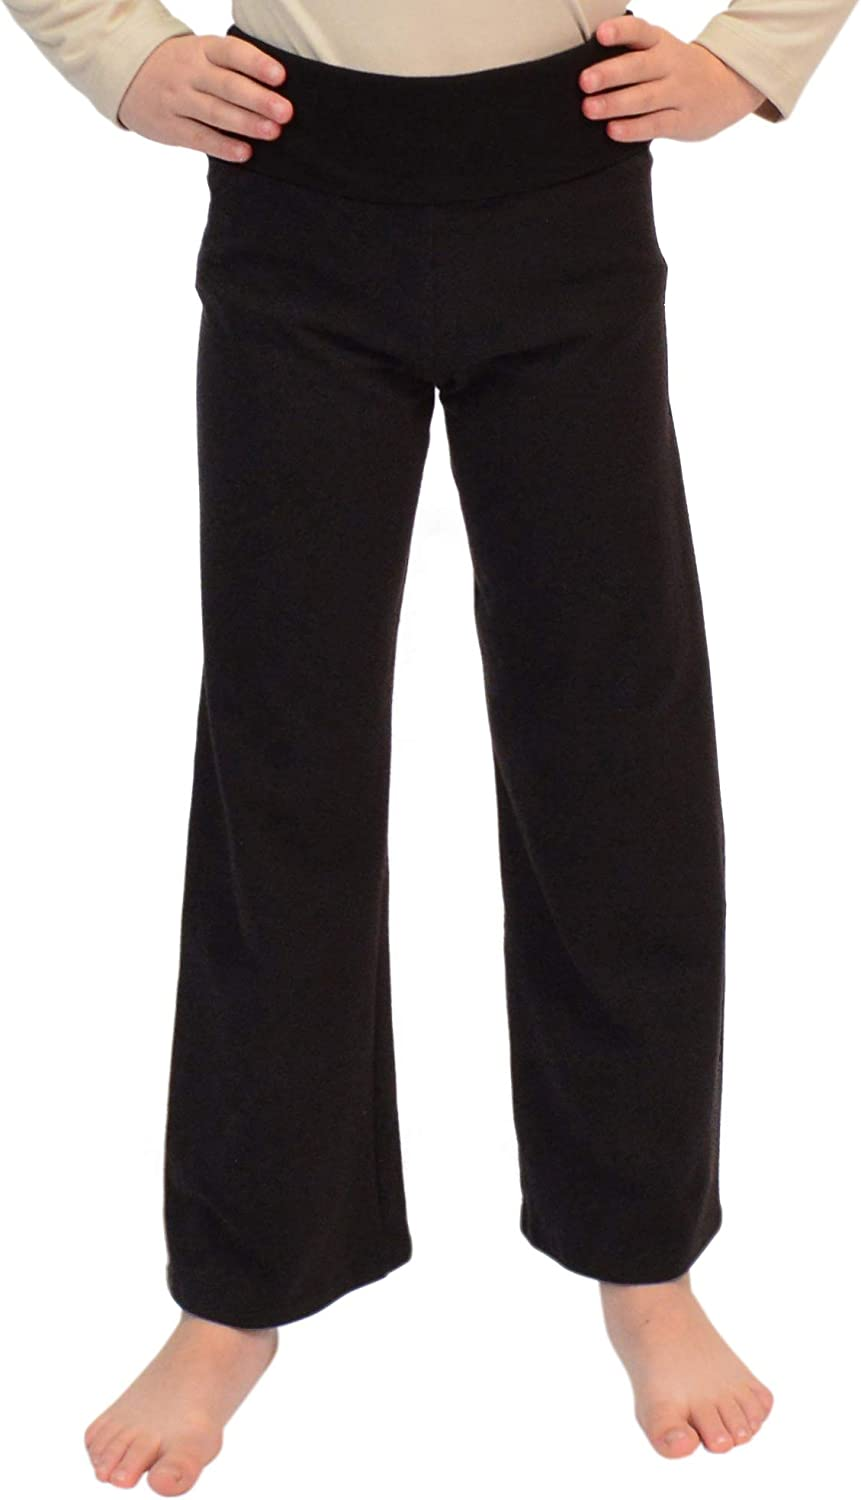 Stretch Year-end annual account is Comfort Girl's Teamwear Cotton Pants Foldover Yoga Genuine Free Shipping